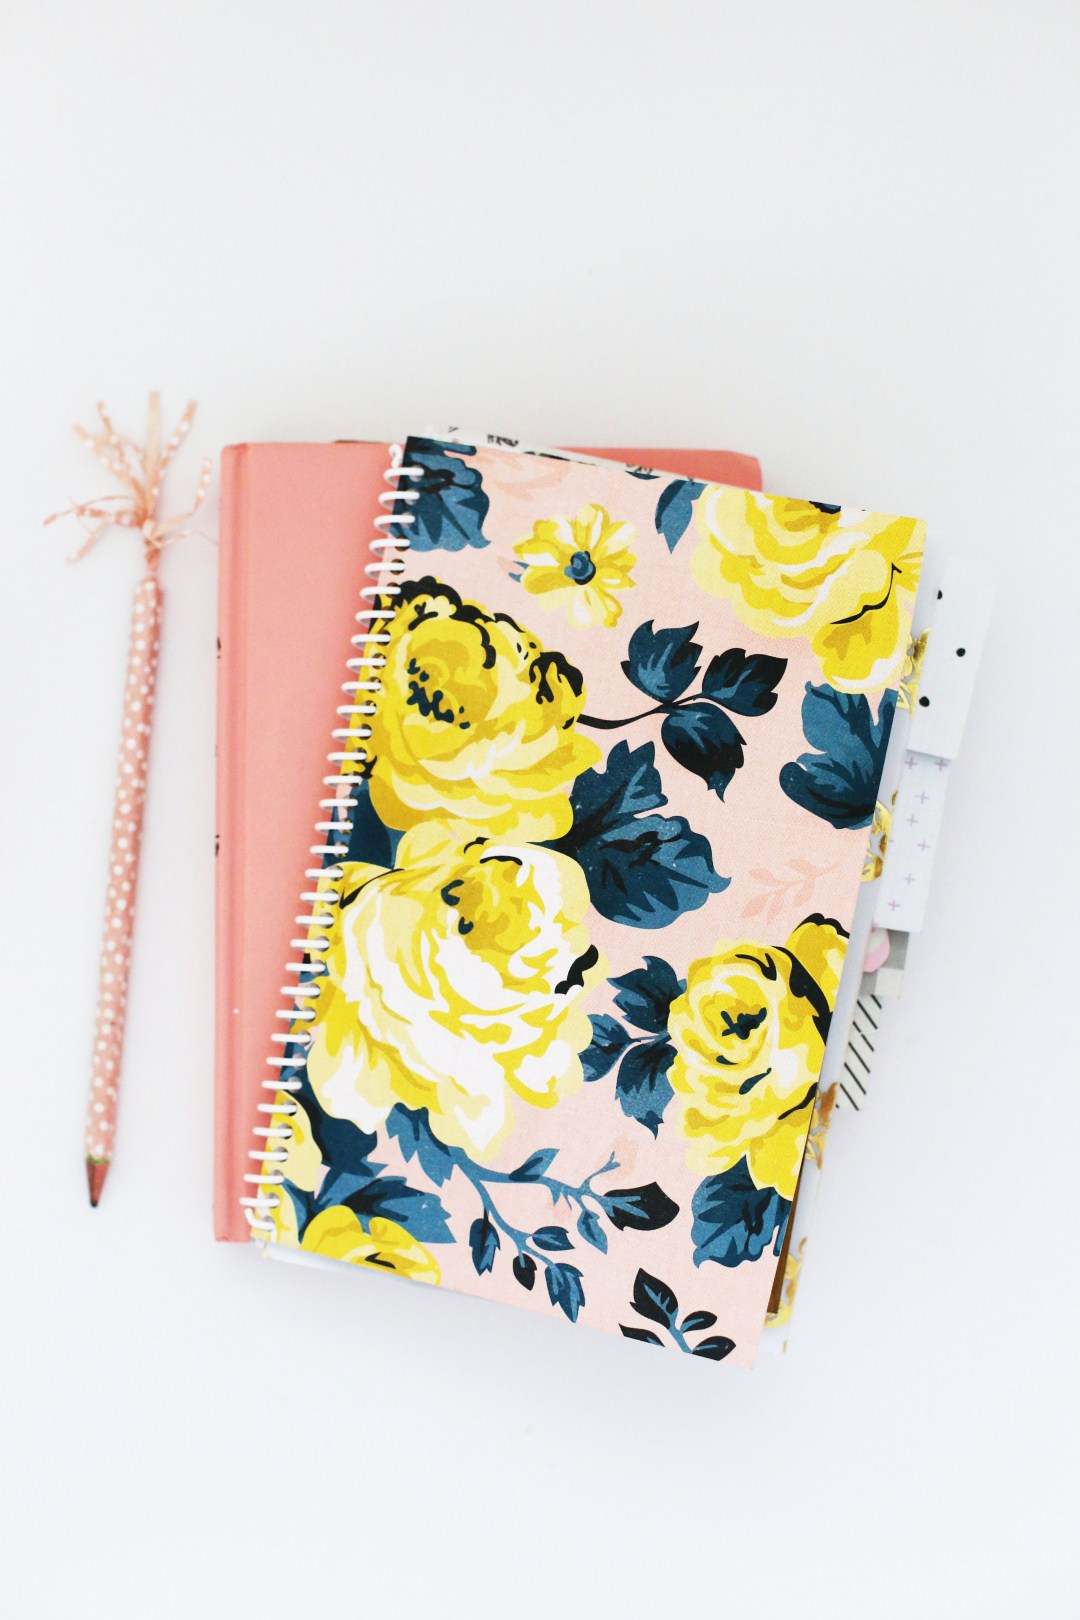 Life lately update a darling diy notebook hello there thanks for being here on my blog ive been hanging out behind the scenes quite a bit this last month and things have been pretty quiet on the mightylinksfo